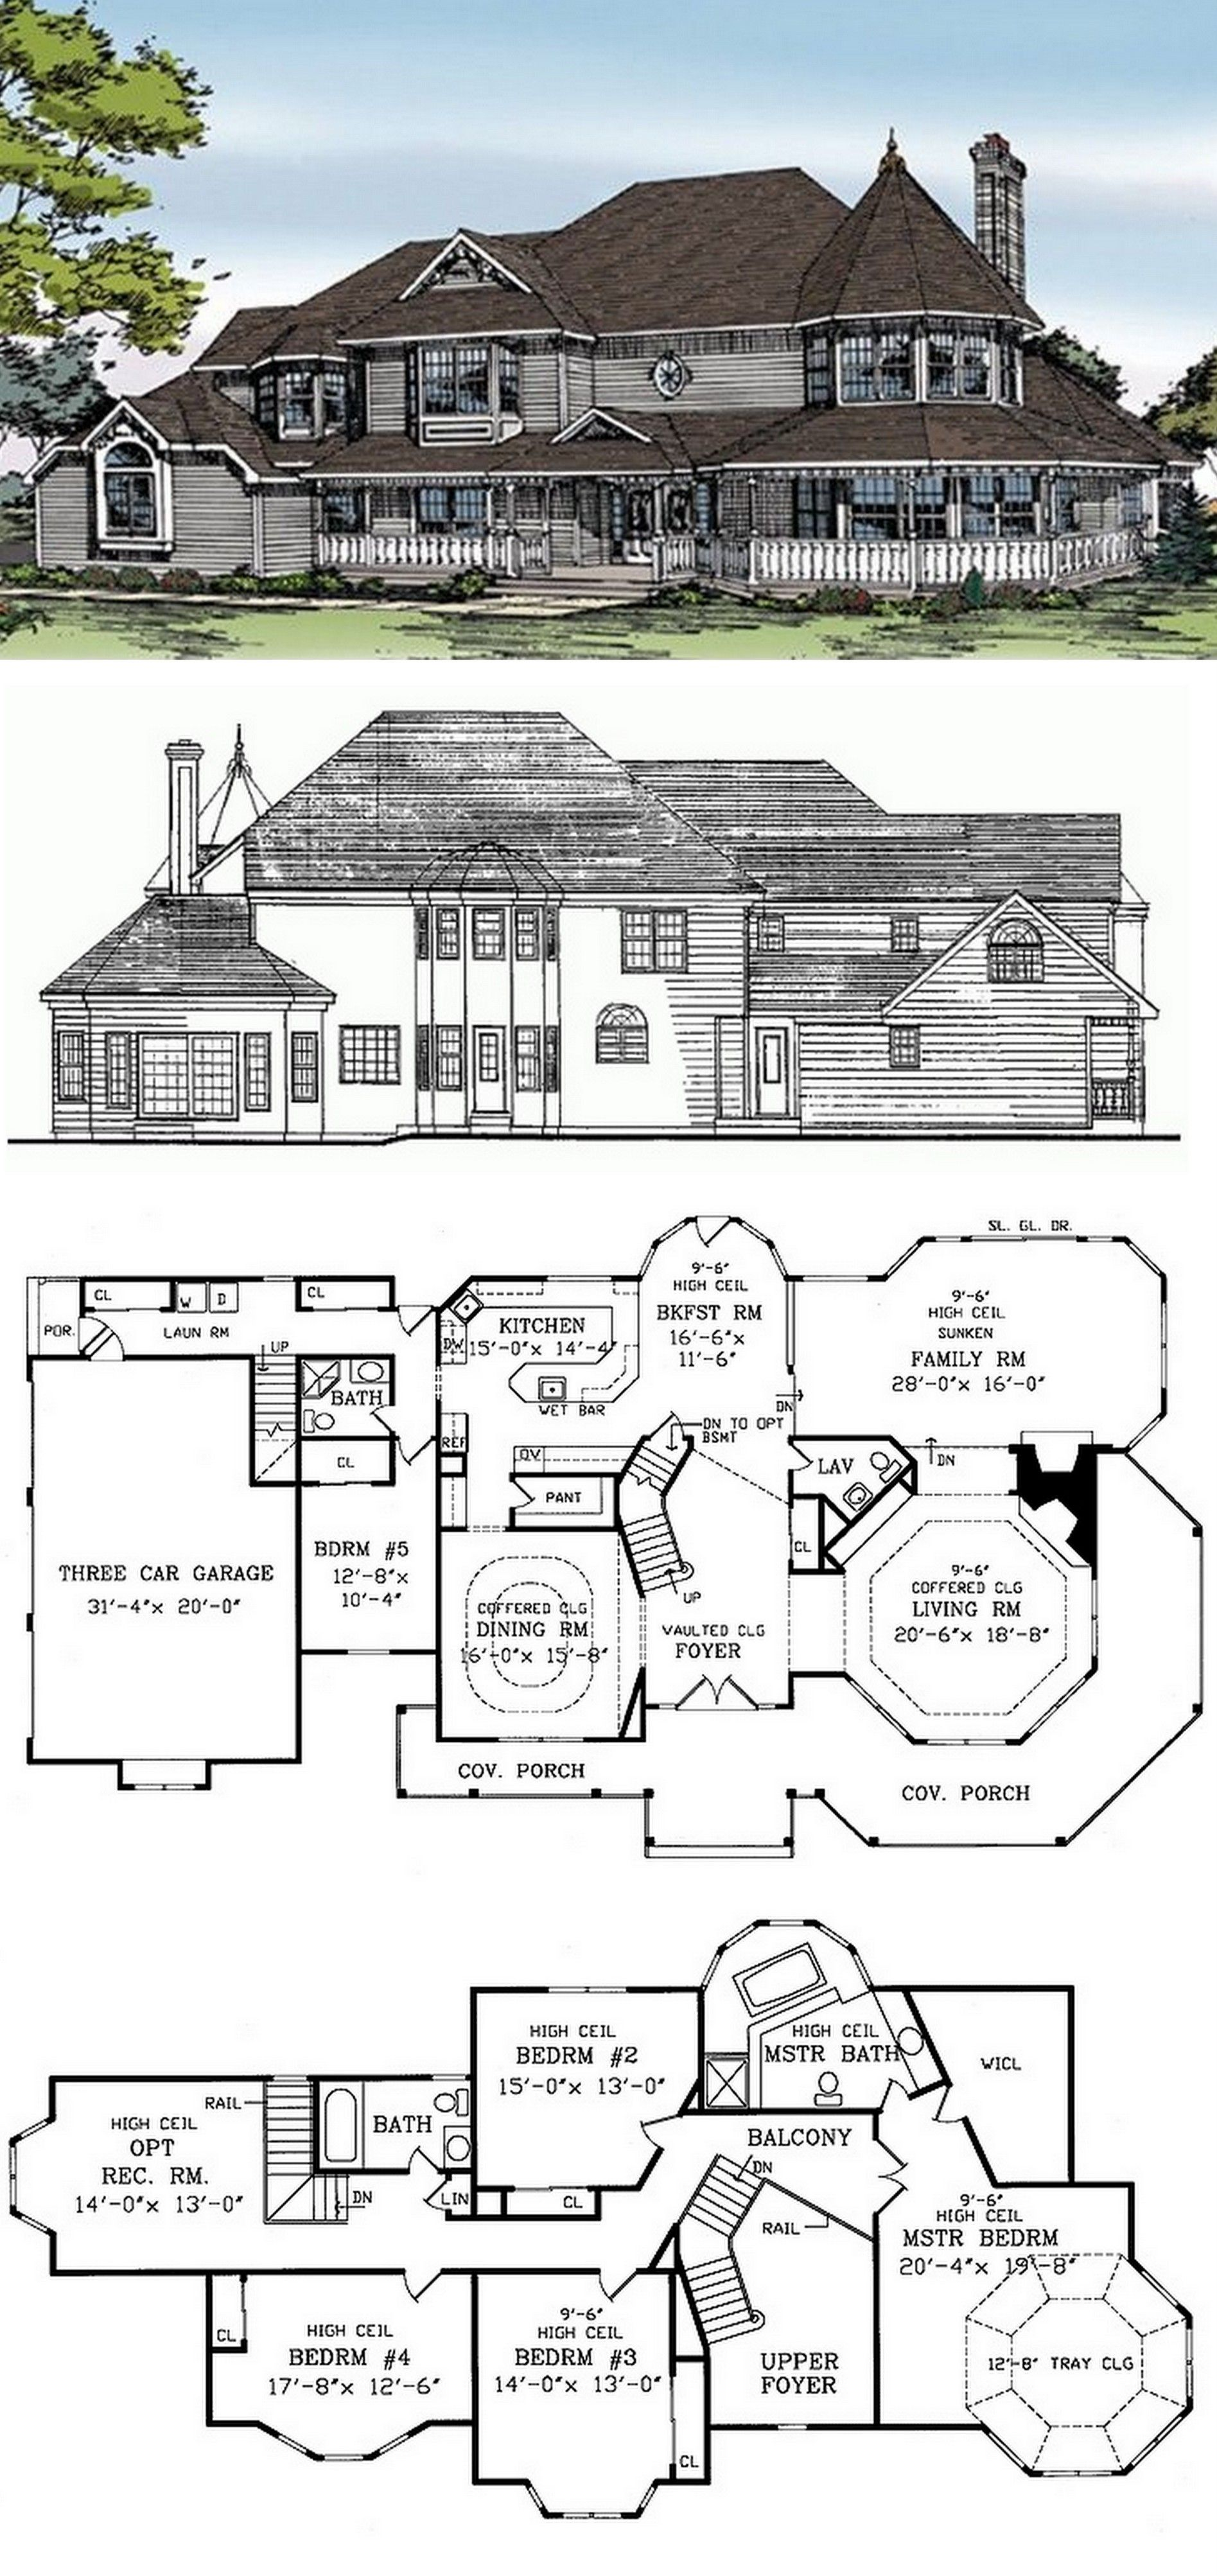 queen anne home plans house plan with 4008 square and 5 bedrooms 21393